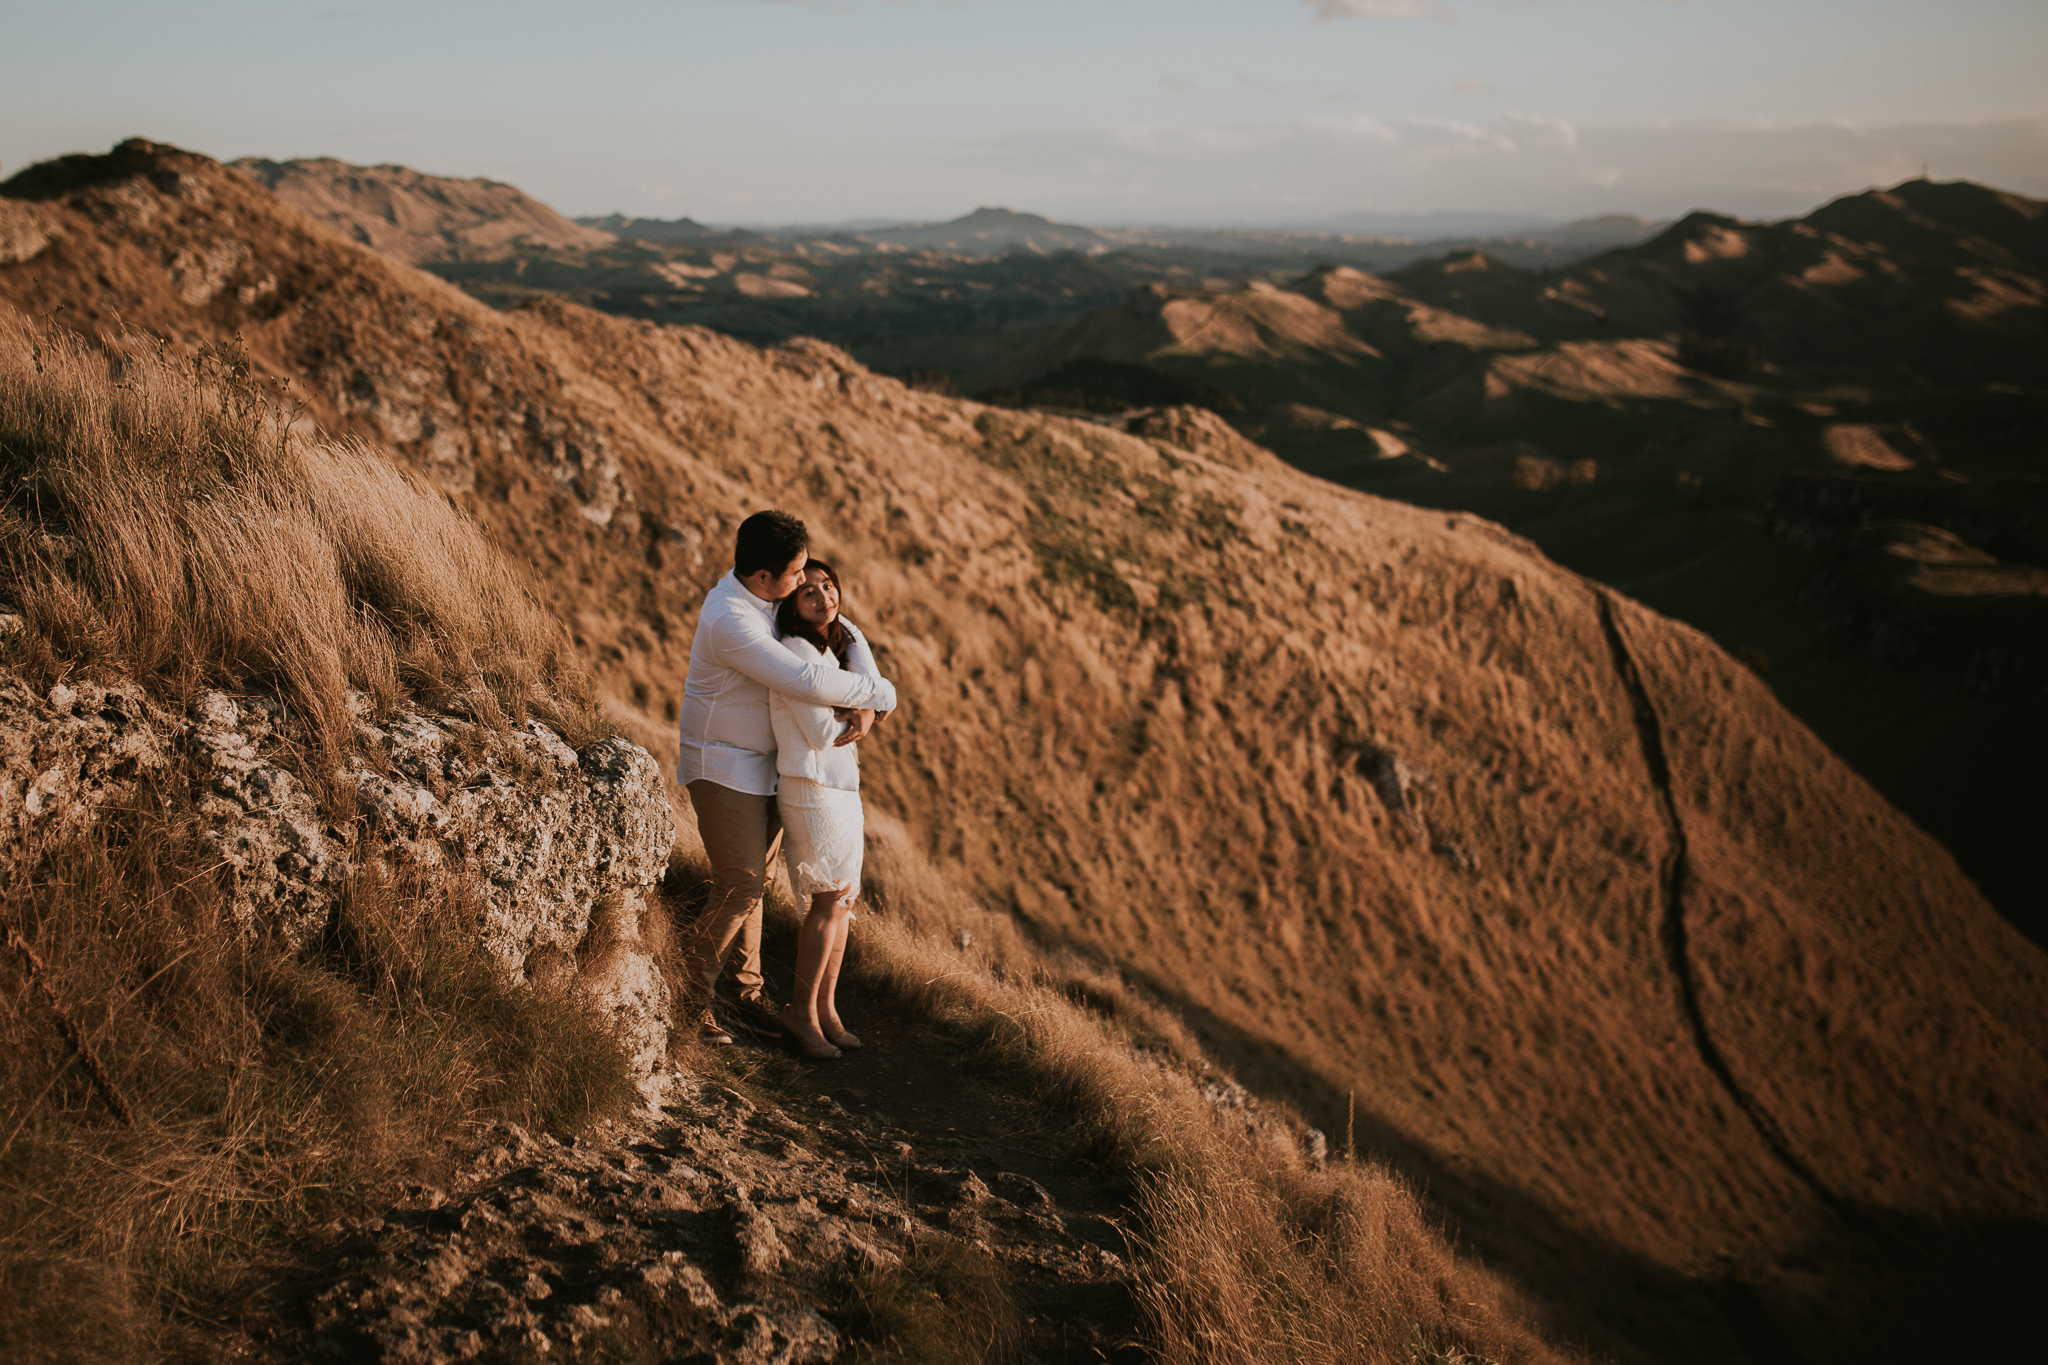 Wedding Photographers Hawkes Bay Te Mata Peak Engagement Shoot Sunset-10.jpg